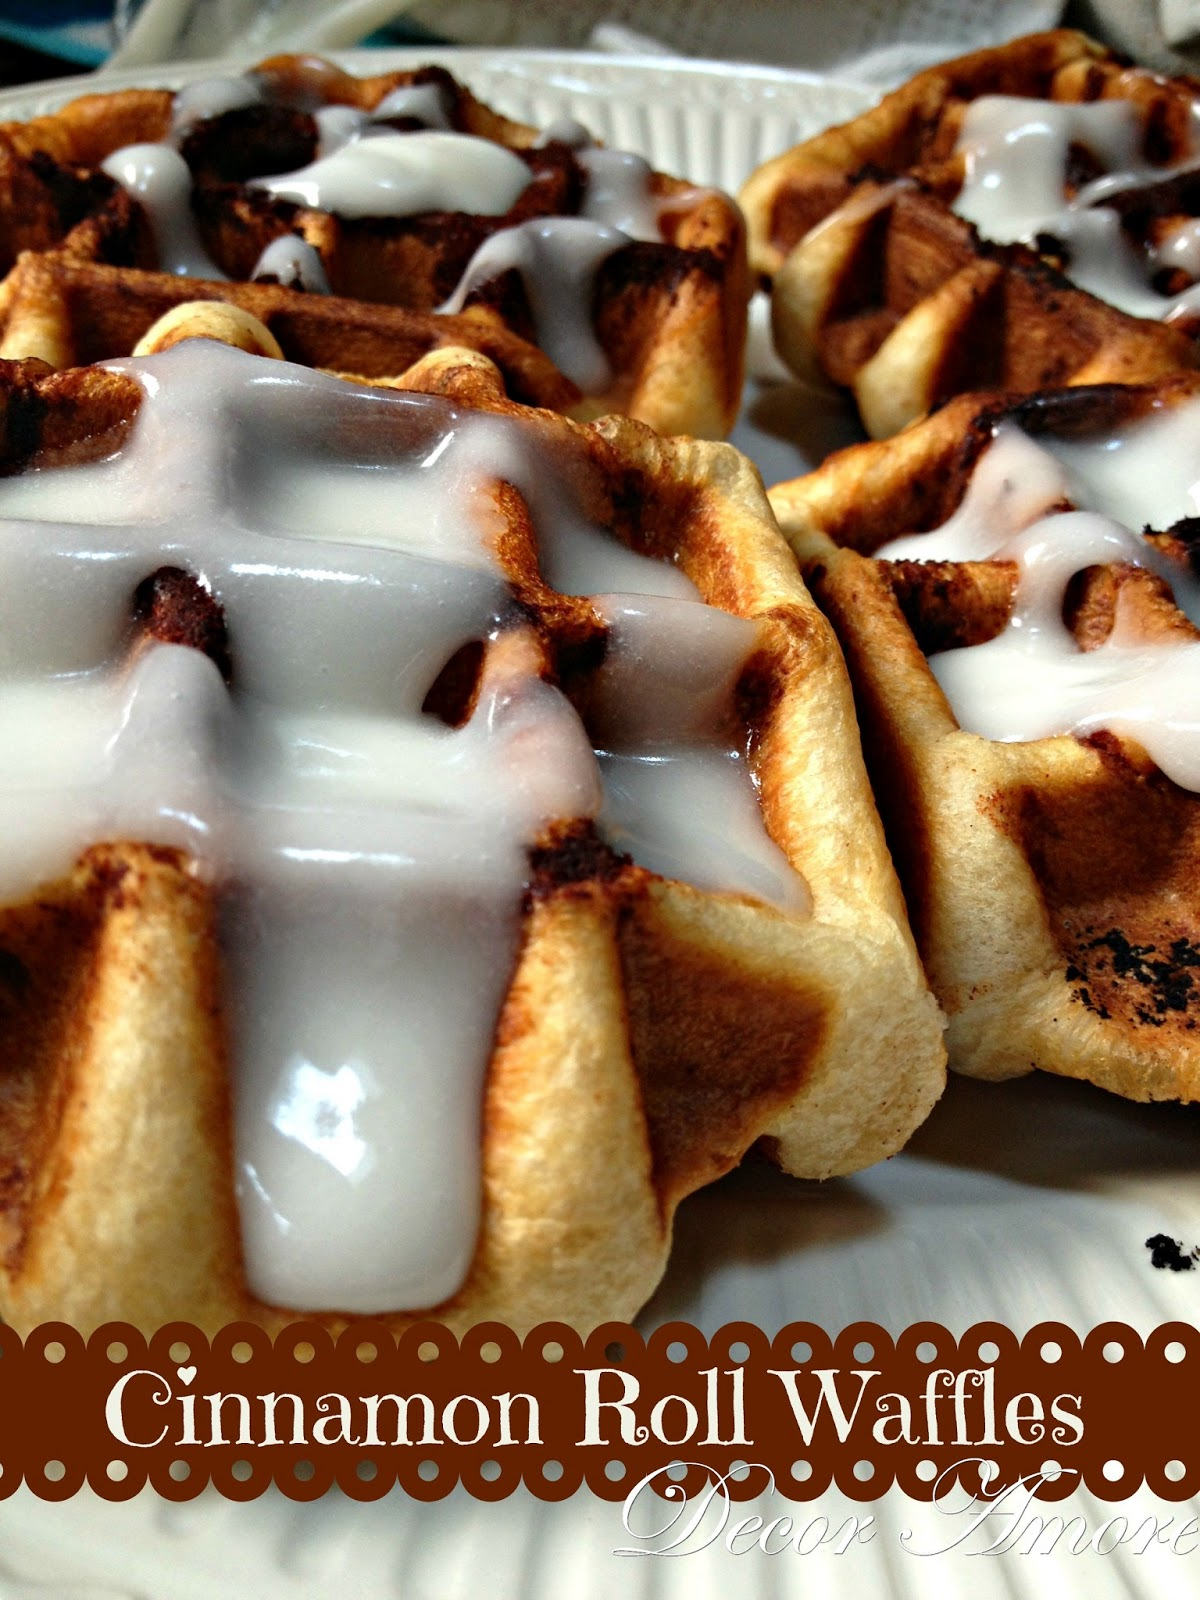 Decor Amore: {Mother's Day} Cinnamon Roll Waffles